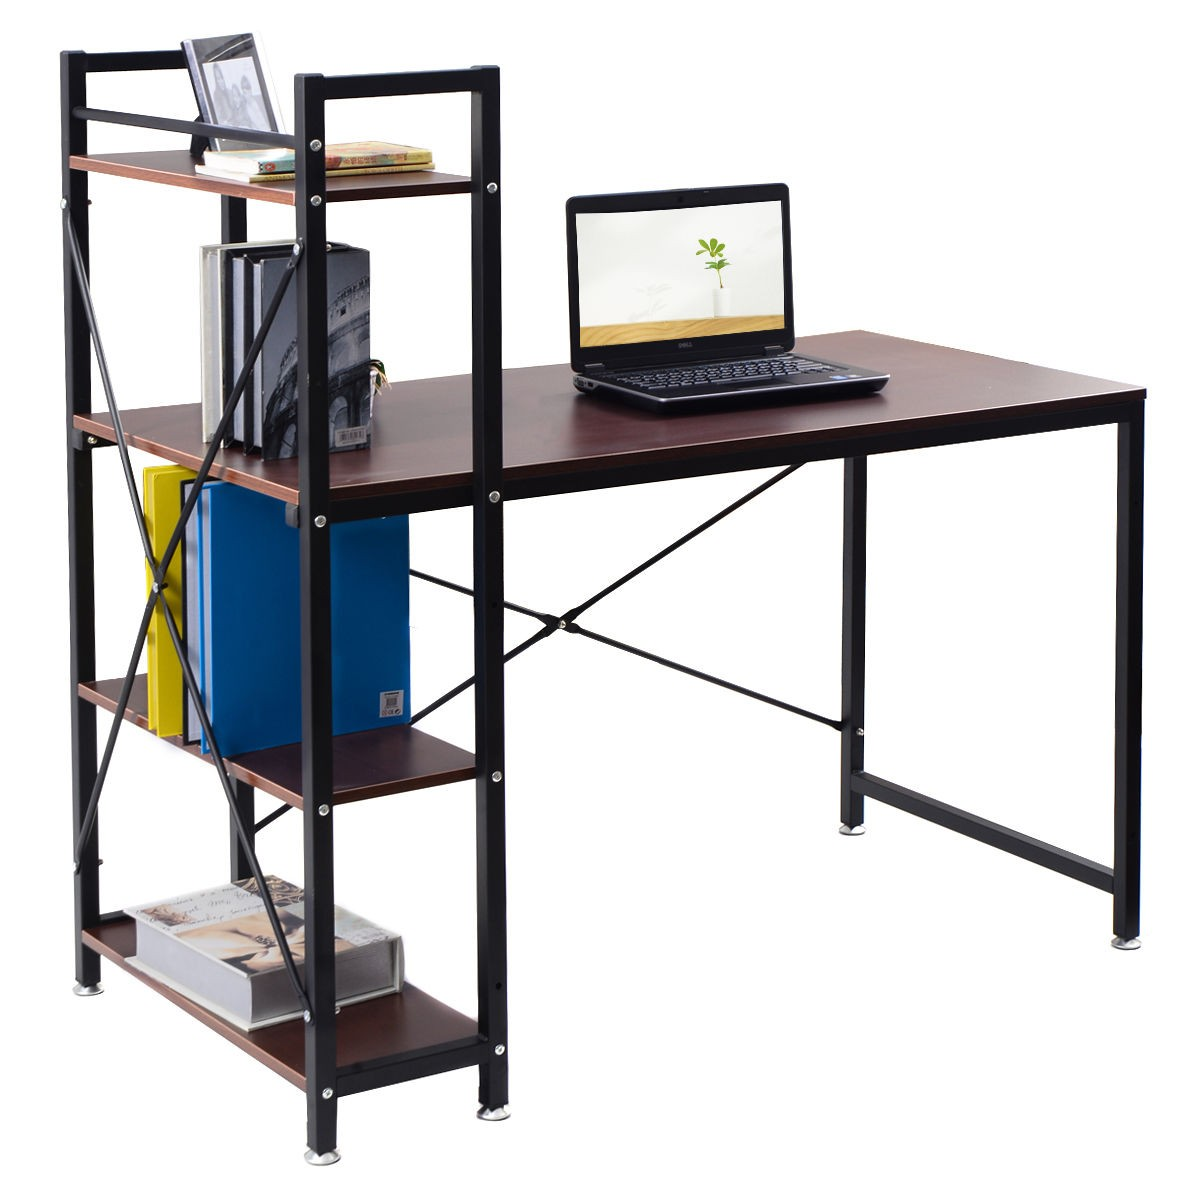 us 4 tier shelves modern computer desk pc workstation. Black Bedroom Furniture Sets. Home Design Ideas